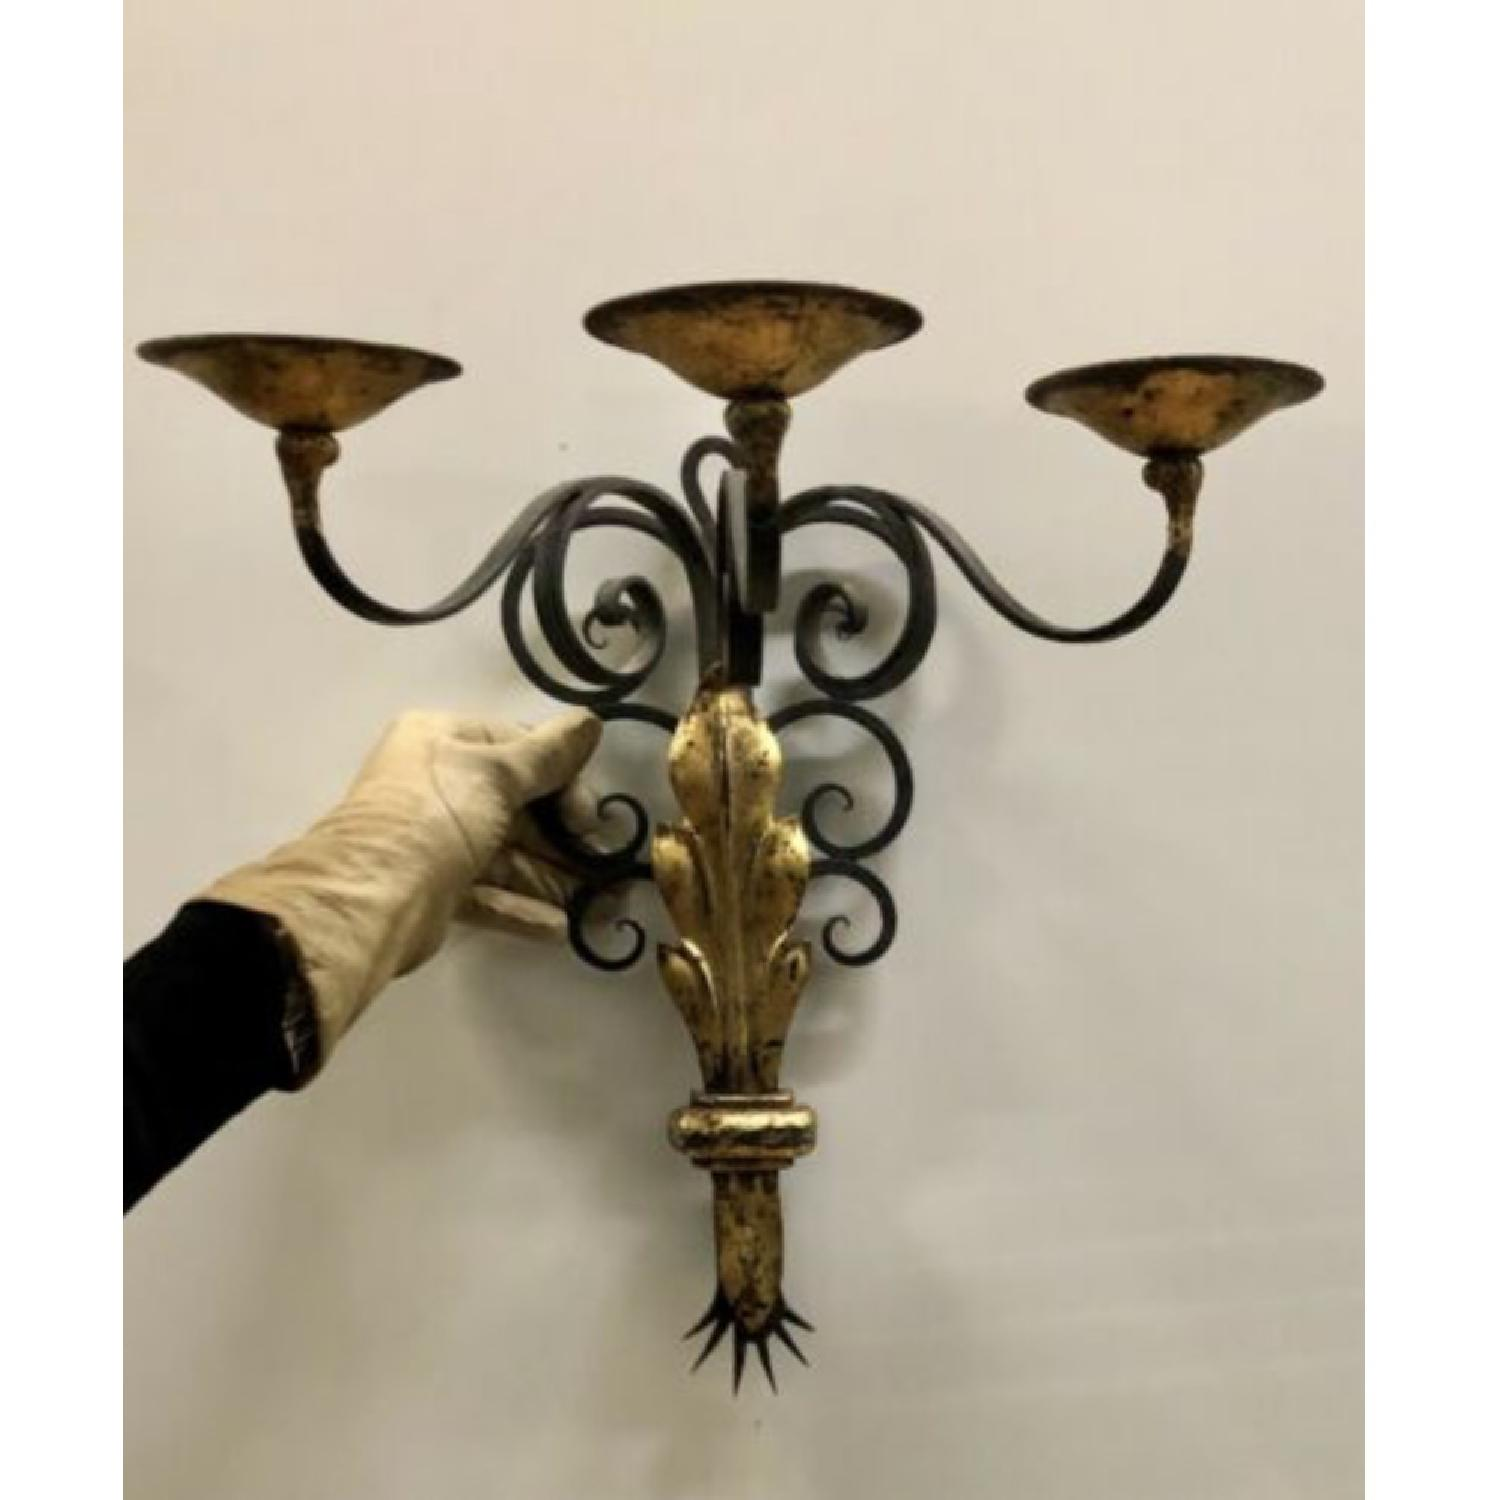 1940's French Black and Gold leaf Wrought iron Sconces - image-1